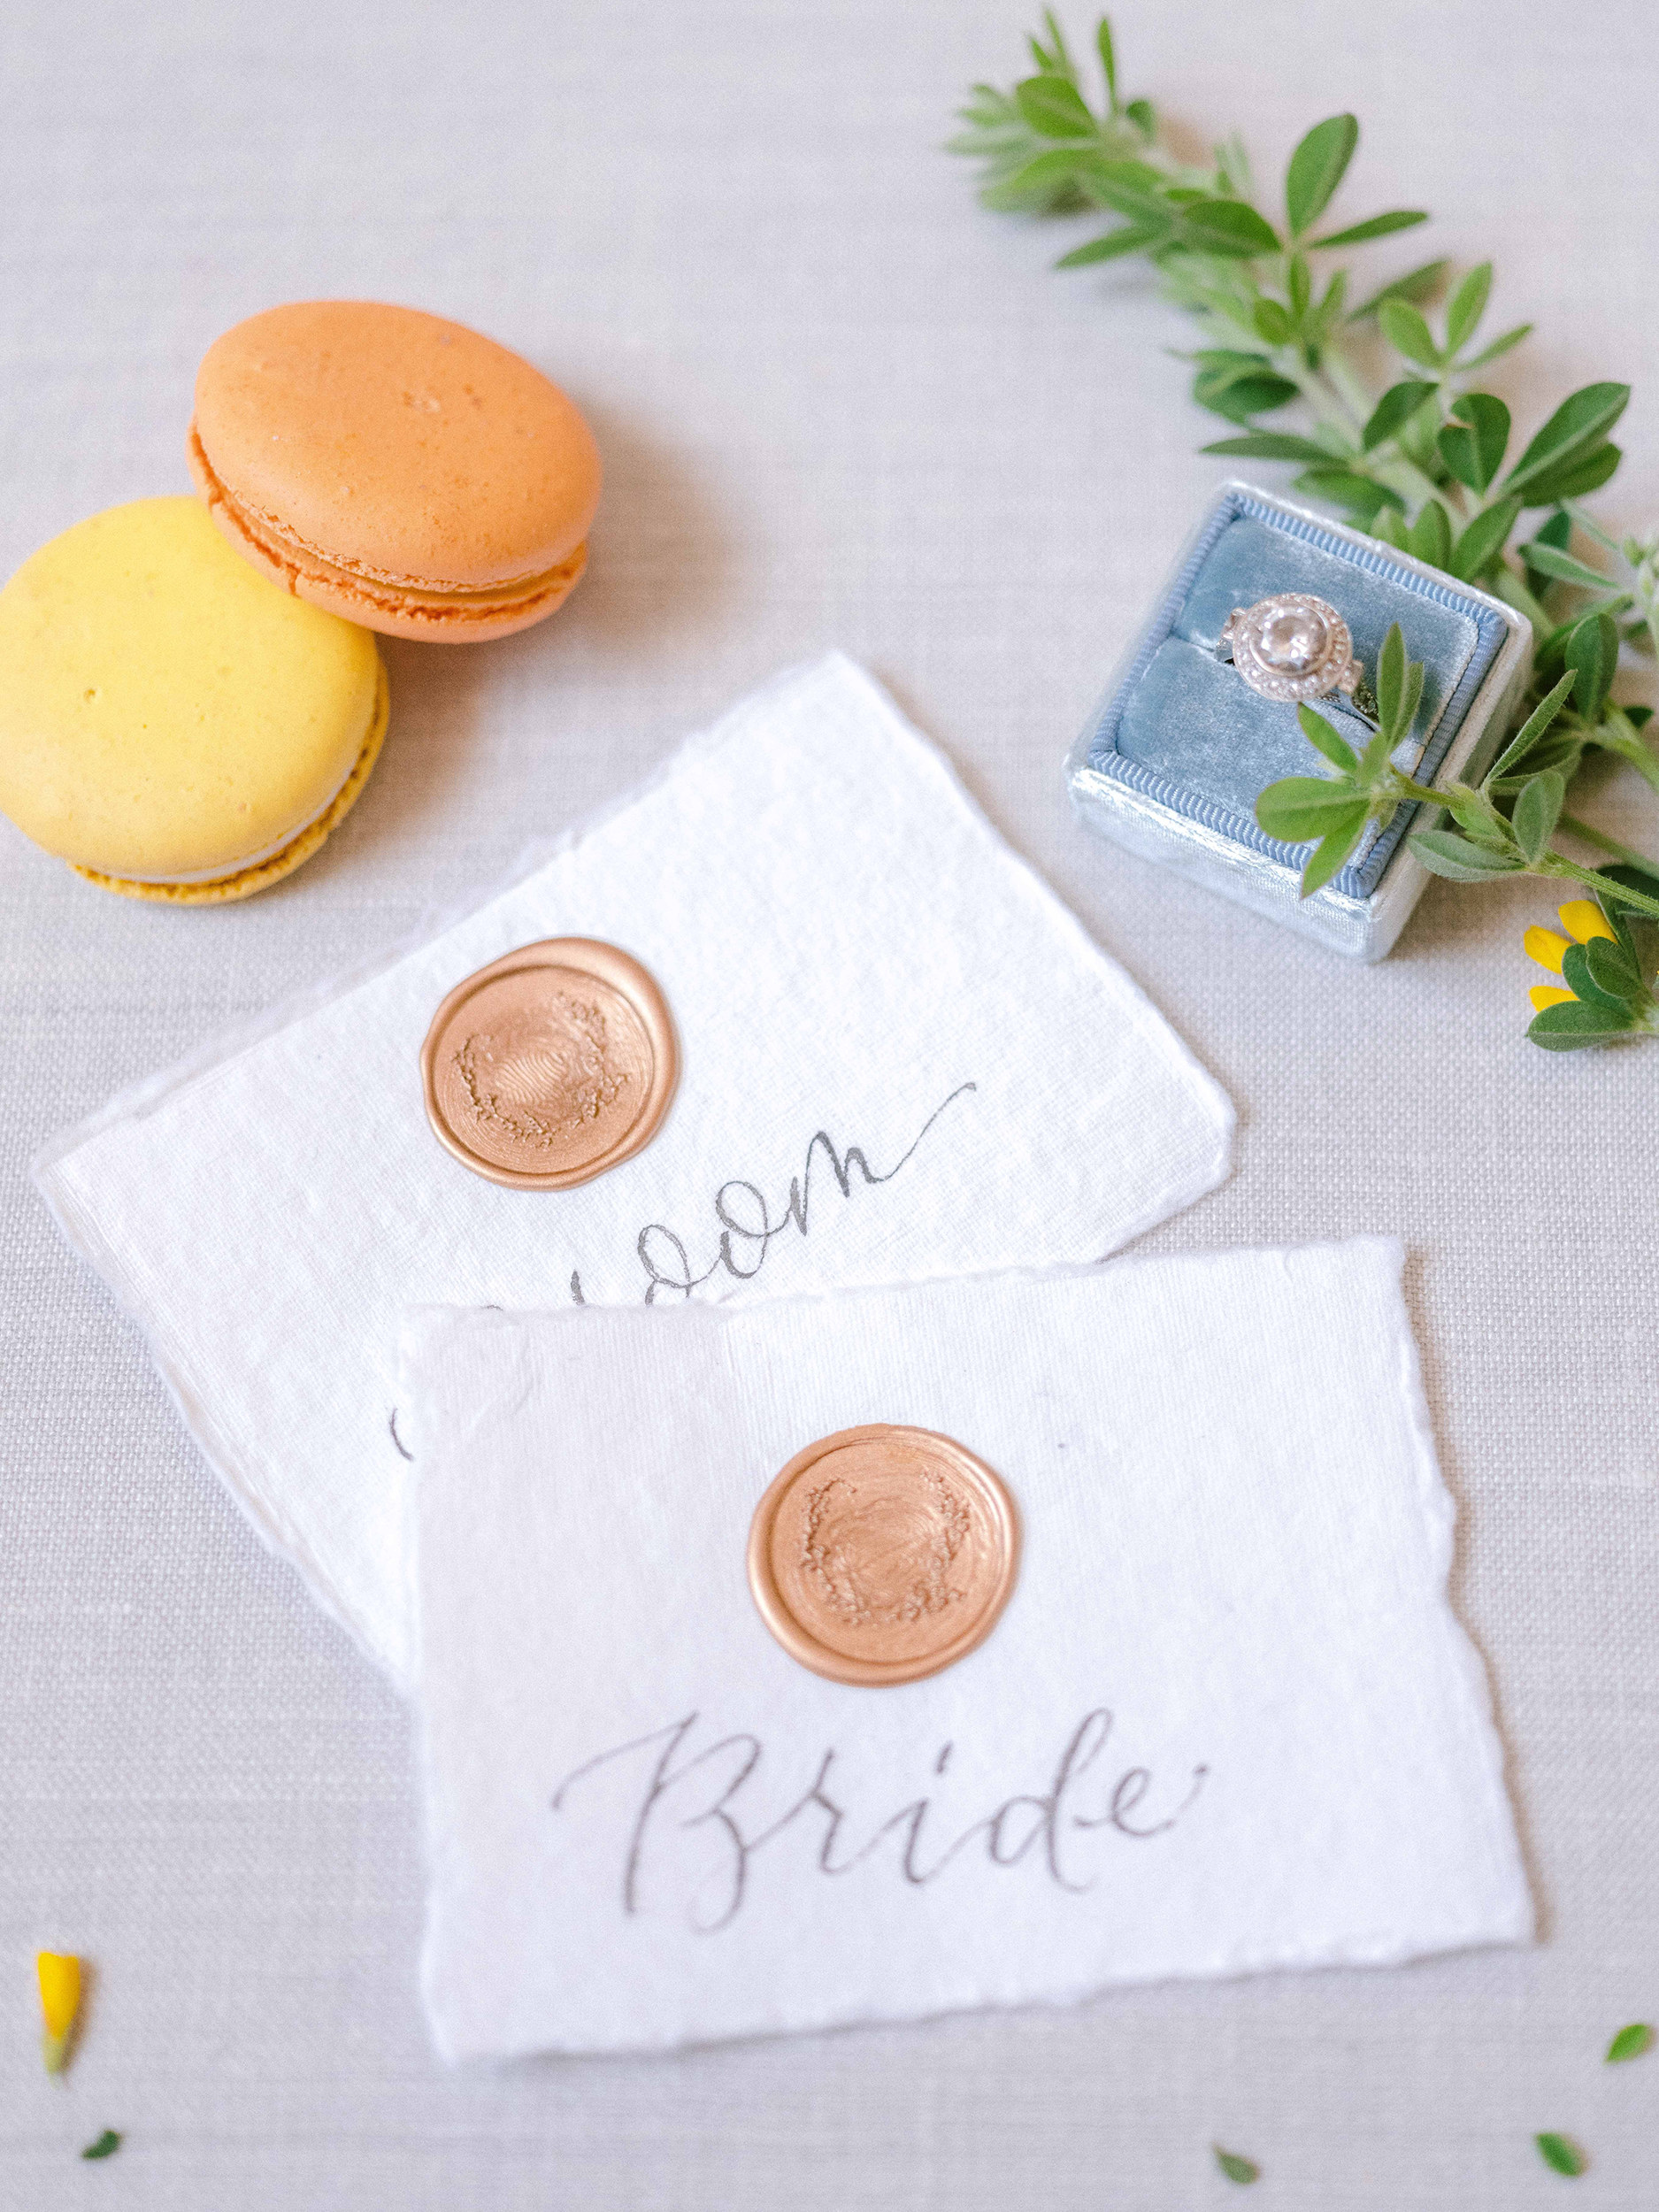 Handmade paper place card and house wax seal